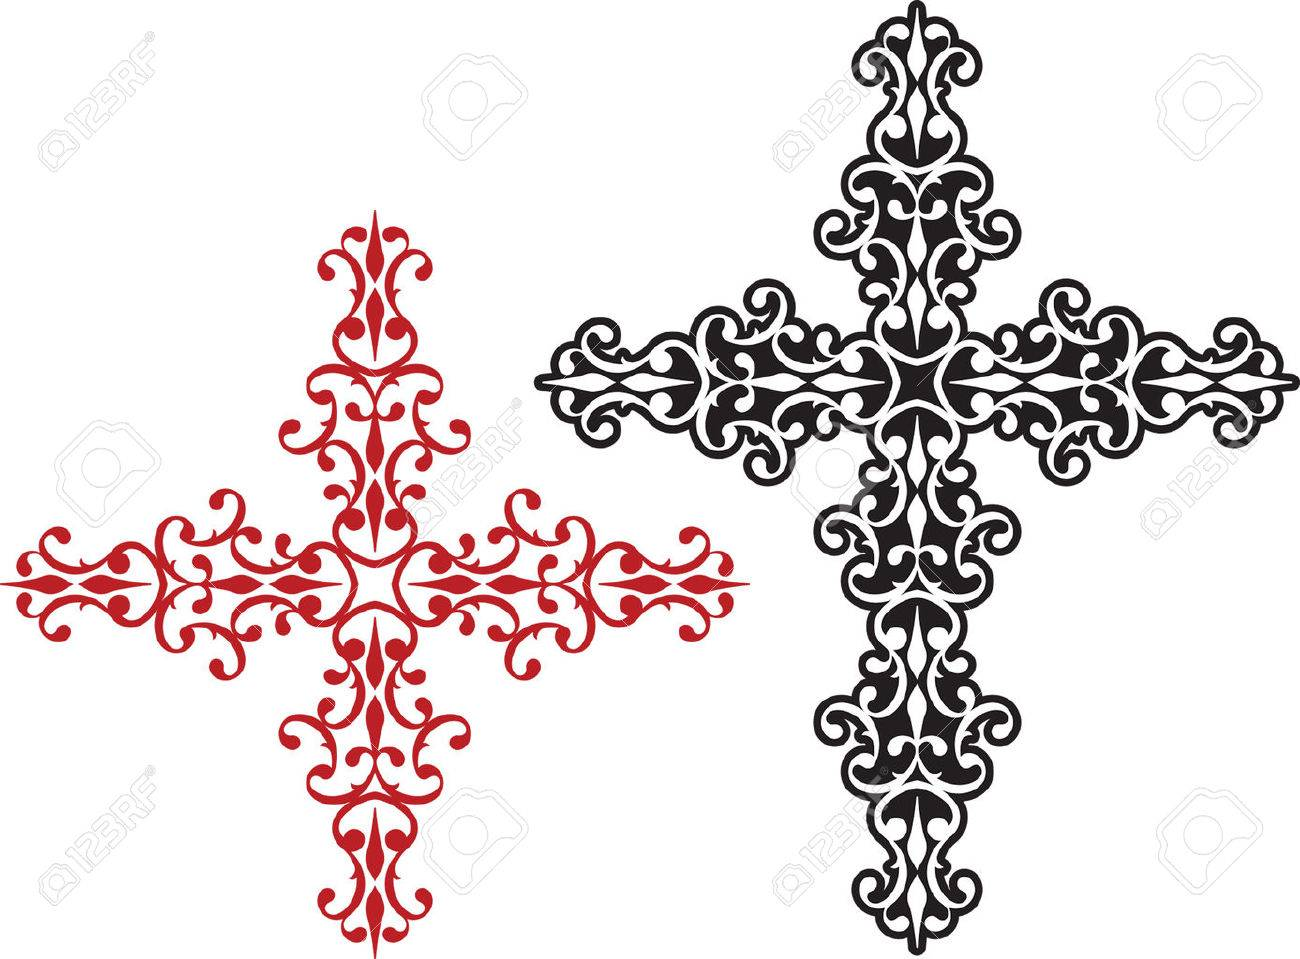 1300x959 6,200 Cross Tattoo Cliparts, Stock Vector And Royalty Free Cross